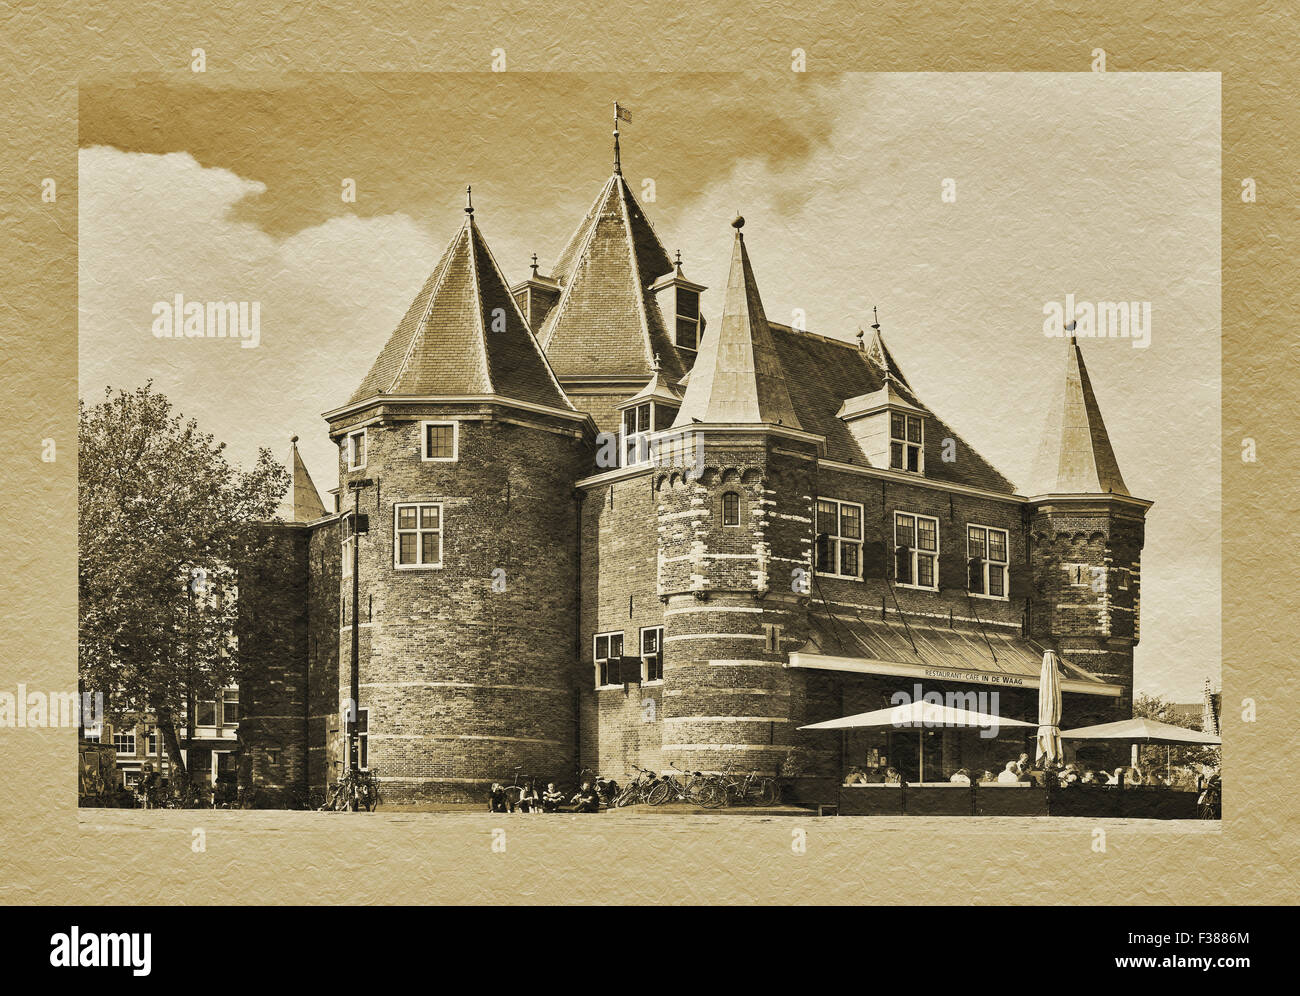 Building of old city scales, De Waag at the Nieuwmarkt  Amsterdam, North Holland, Netherlands, Europe - Stock Image